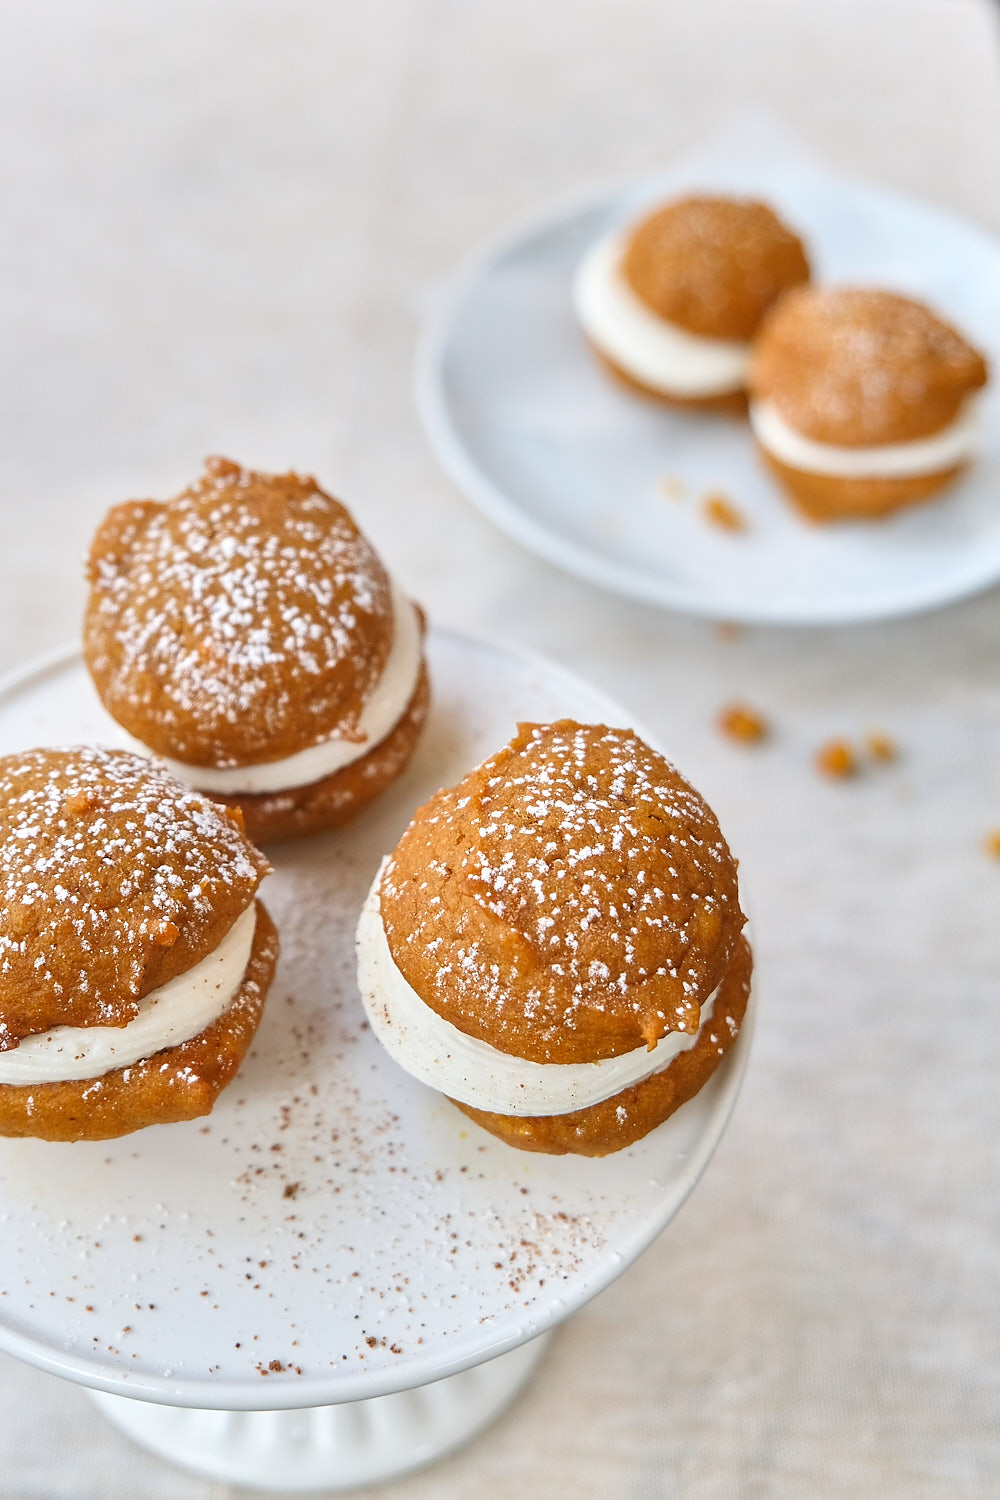 Mini pumpkin whoopie pies on a cake stand with a dusting of spices and powdered sugar.